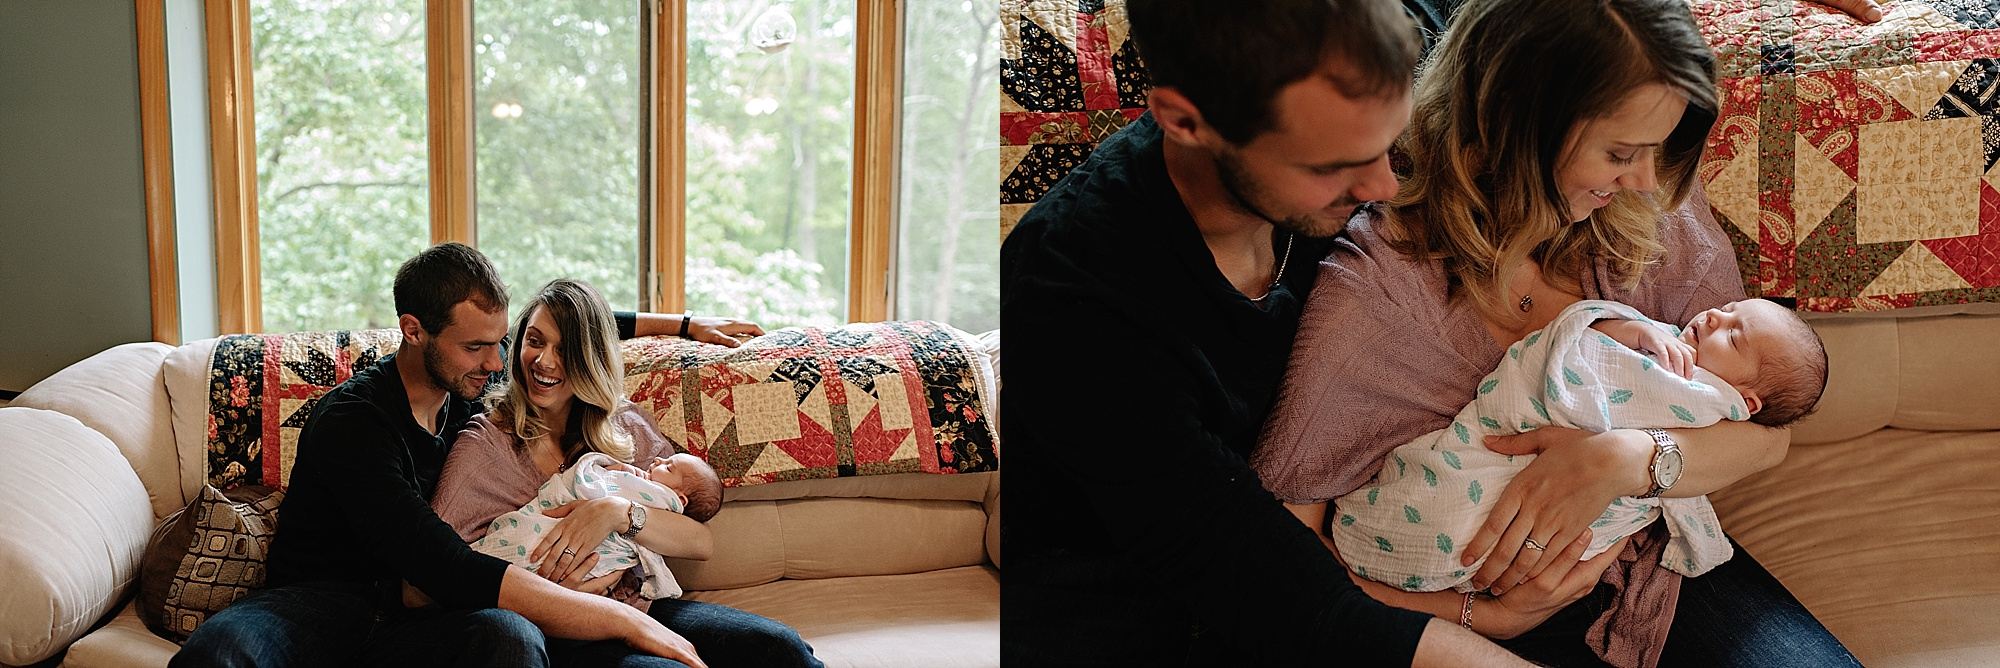 lauren-grayson-photography-cleveland-ohio-photographer-family-newborn-in-home-lifestyle-baby-session-gracelynne_0406.jpg